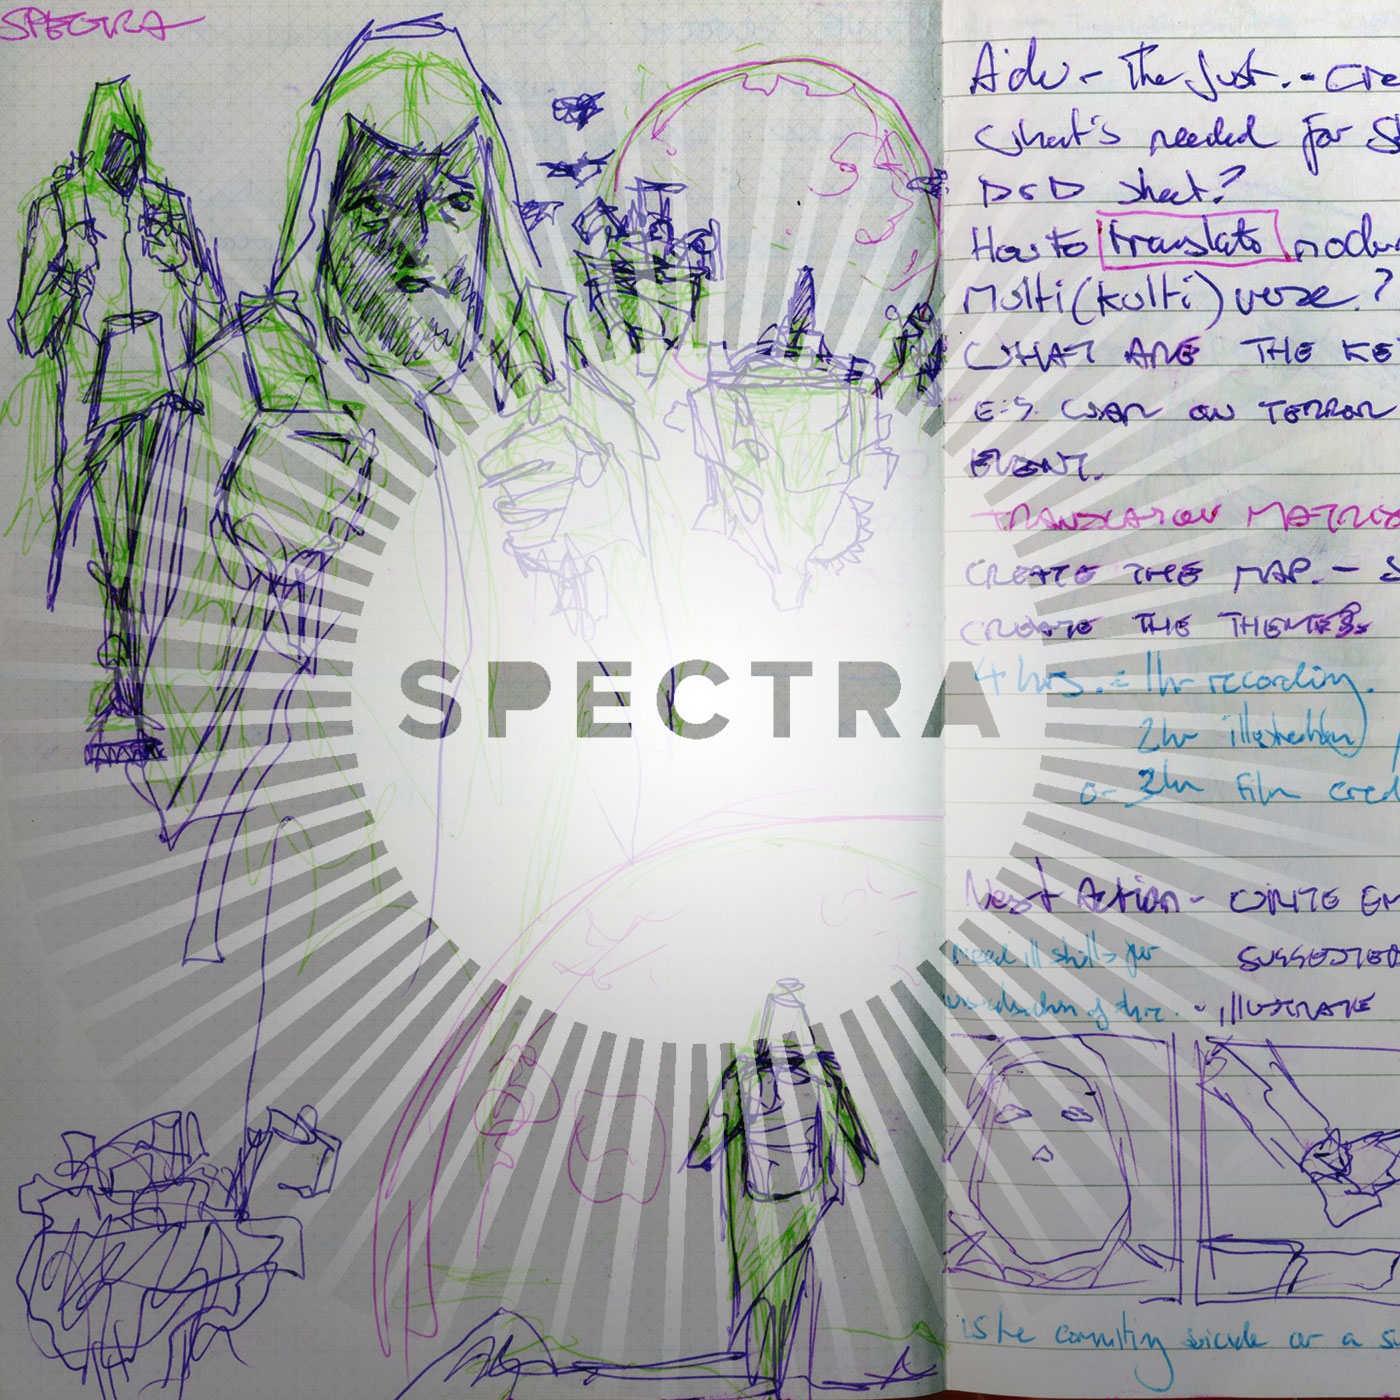 SPECTRA: Episode 2. This time in a Spaceship